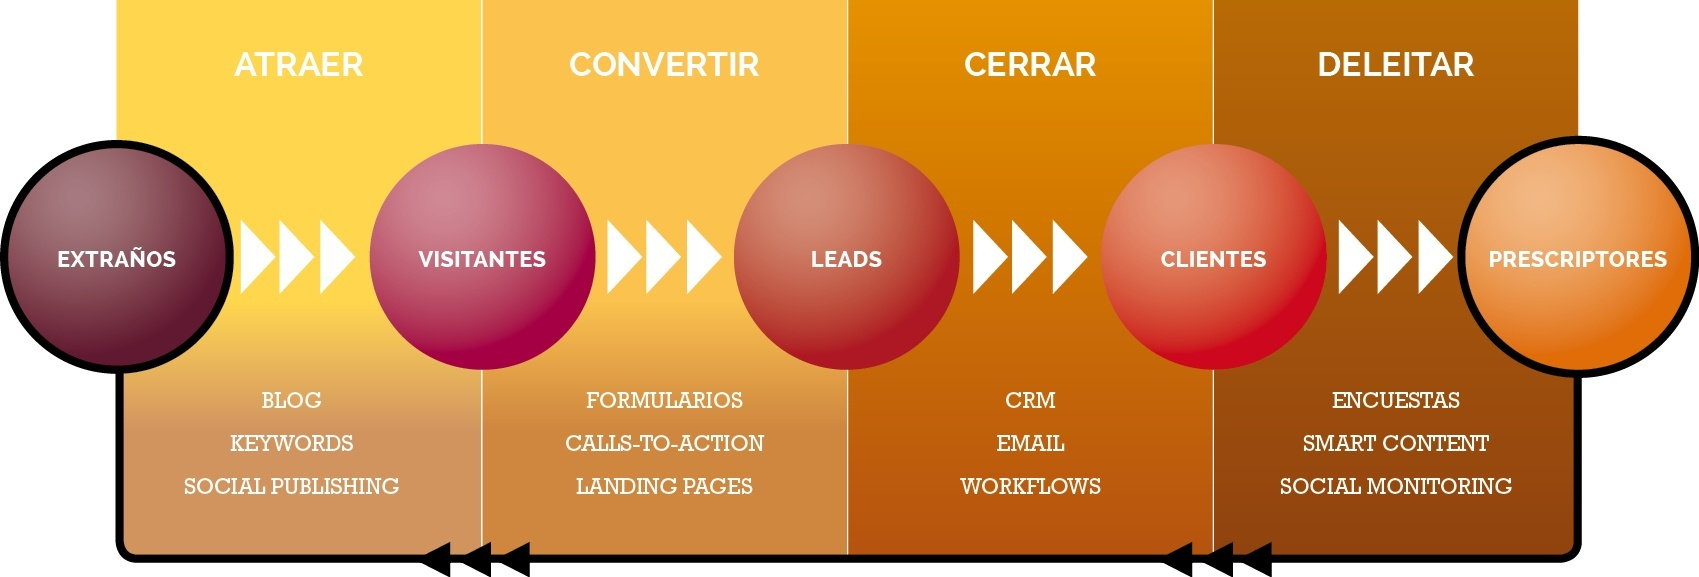 Inbound_Marketing._Metodología